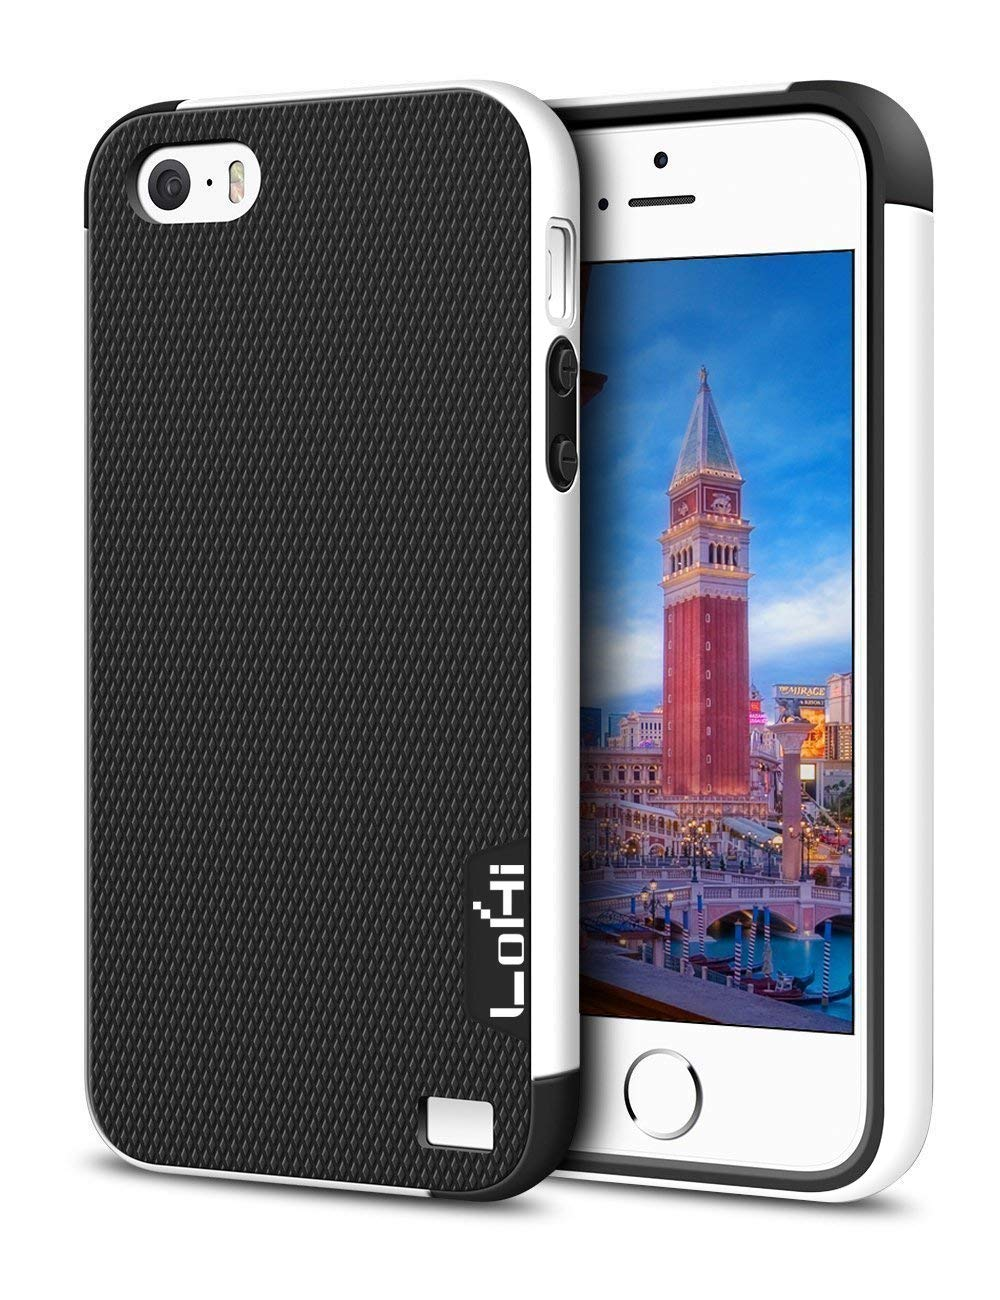 iPhone 5S Case, LoHi Apple iPhone SE Case [Dual Protection] Anti-Scratch Shockproof Bumper Case for iPhone SE 5S 5 - Black